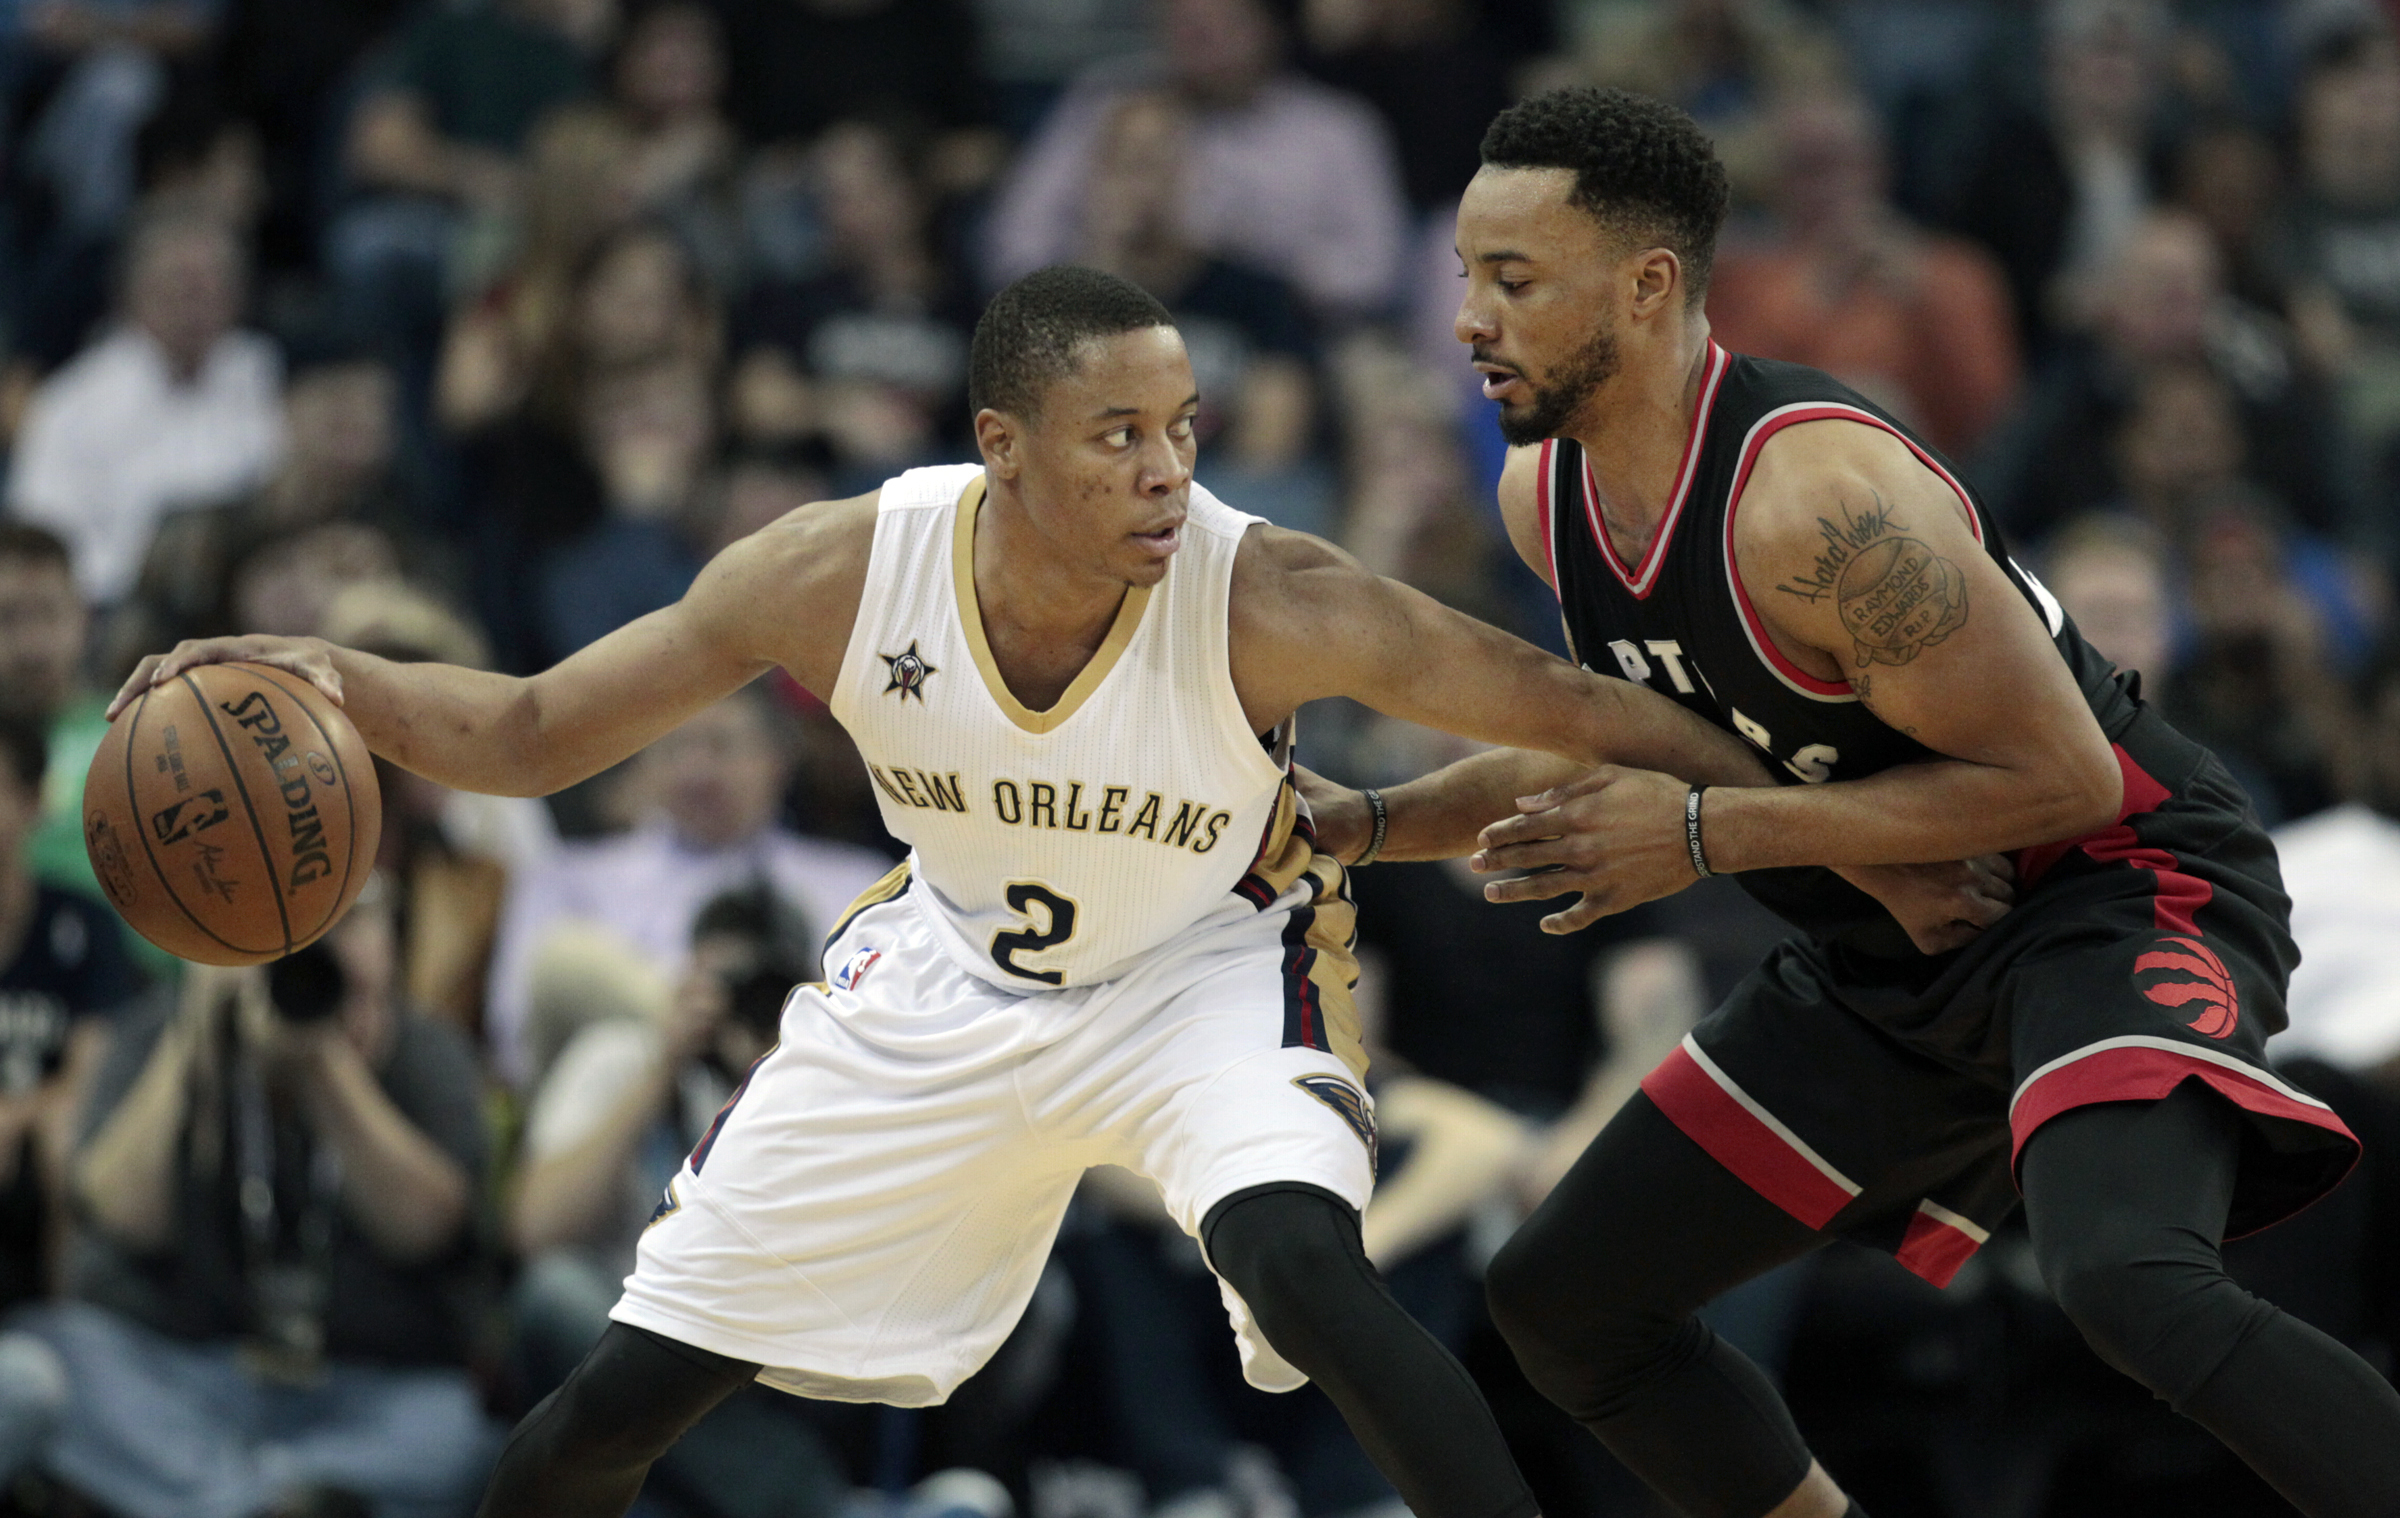 The New Orleans Pelicans brought back guard Tim Frazier (2) on Wednesday ahead of the season opener. Frazier played with the Pelicans at the end of the 2015-16 season and for the entire 2016-17 campaign. (Photo by Brett Duke, Nola.com | The Times-Picayune)